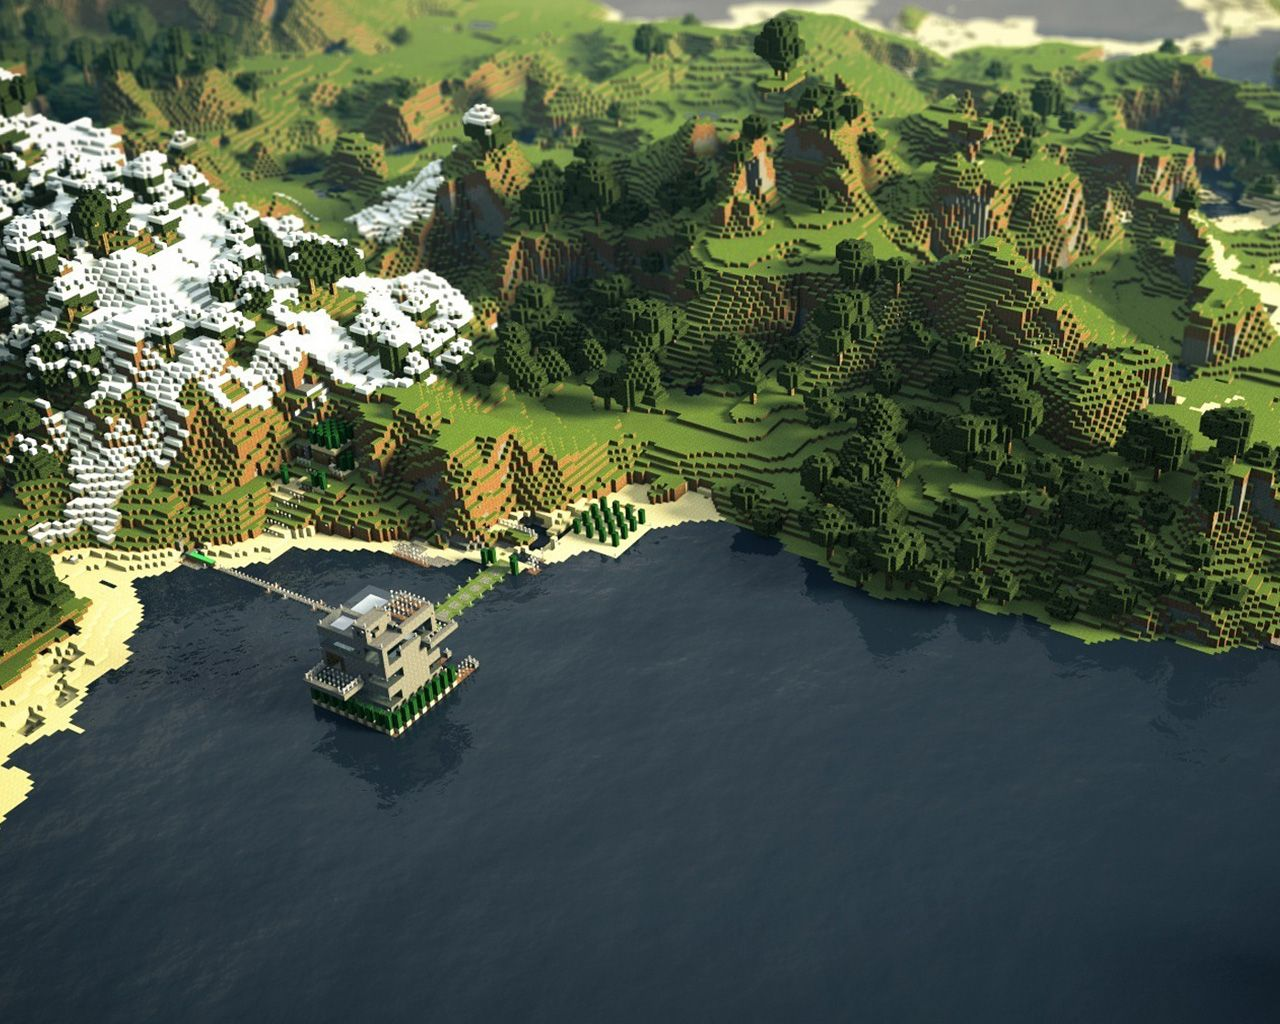 Must see Wallpaper Minecraft Desktop - d2c7cb589323f17994fbd01d280ae53e  Graphic_279589.jpg